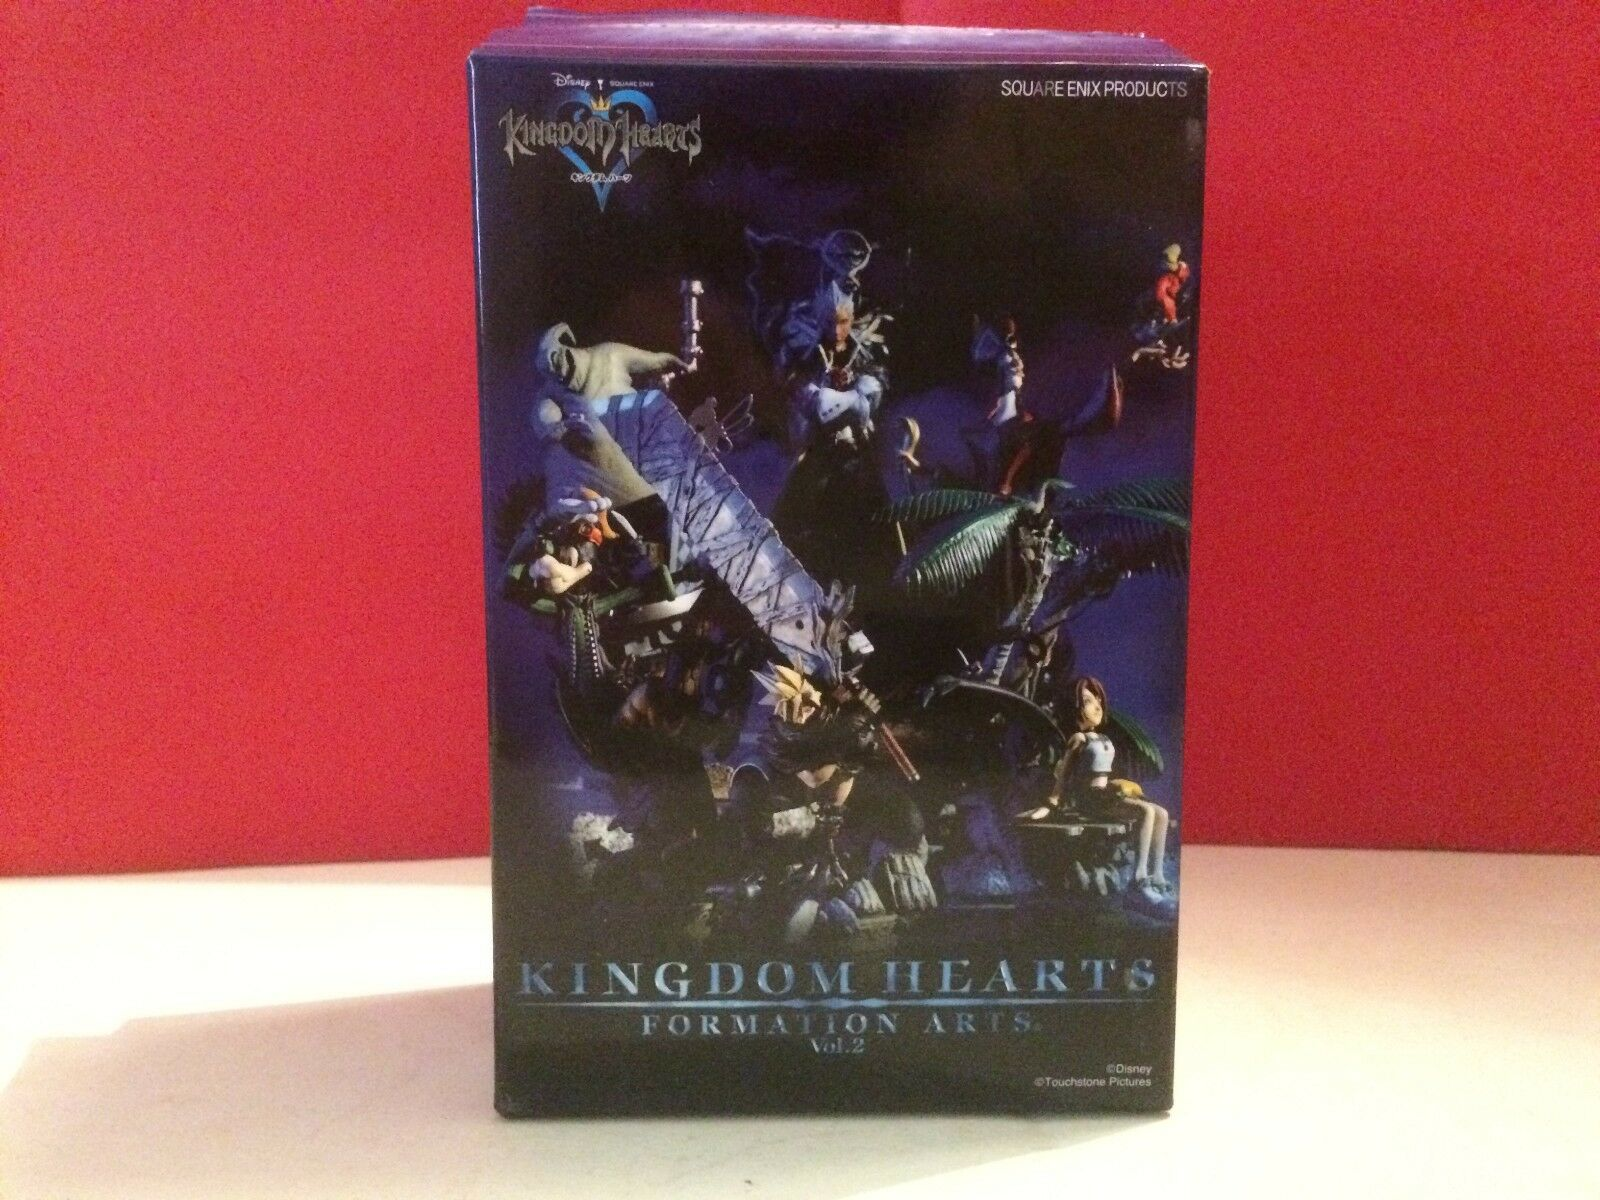 SQUAREENIX SUPERBE FIGURINE KINGDOM HEARTS FORMATION ARTS VOL 2 CLOUD STRIFE